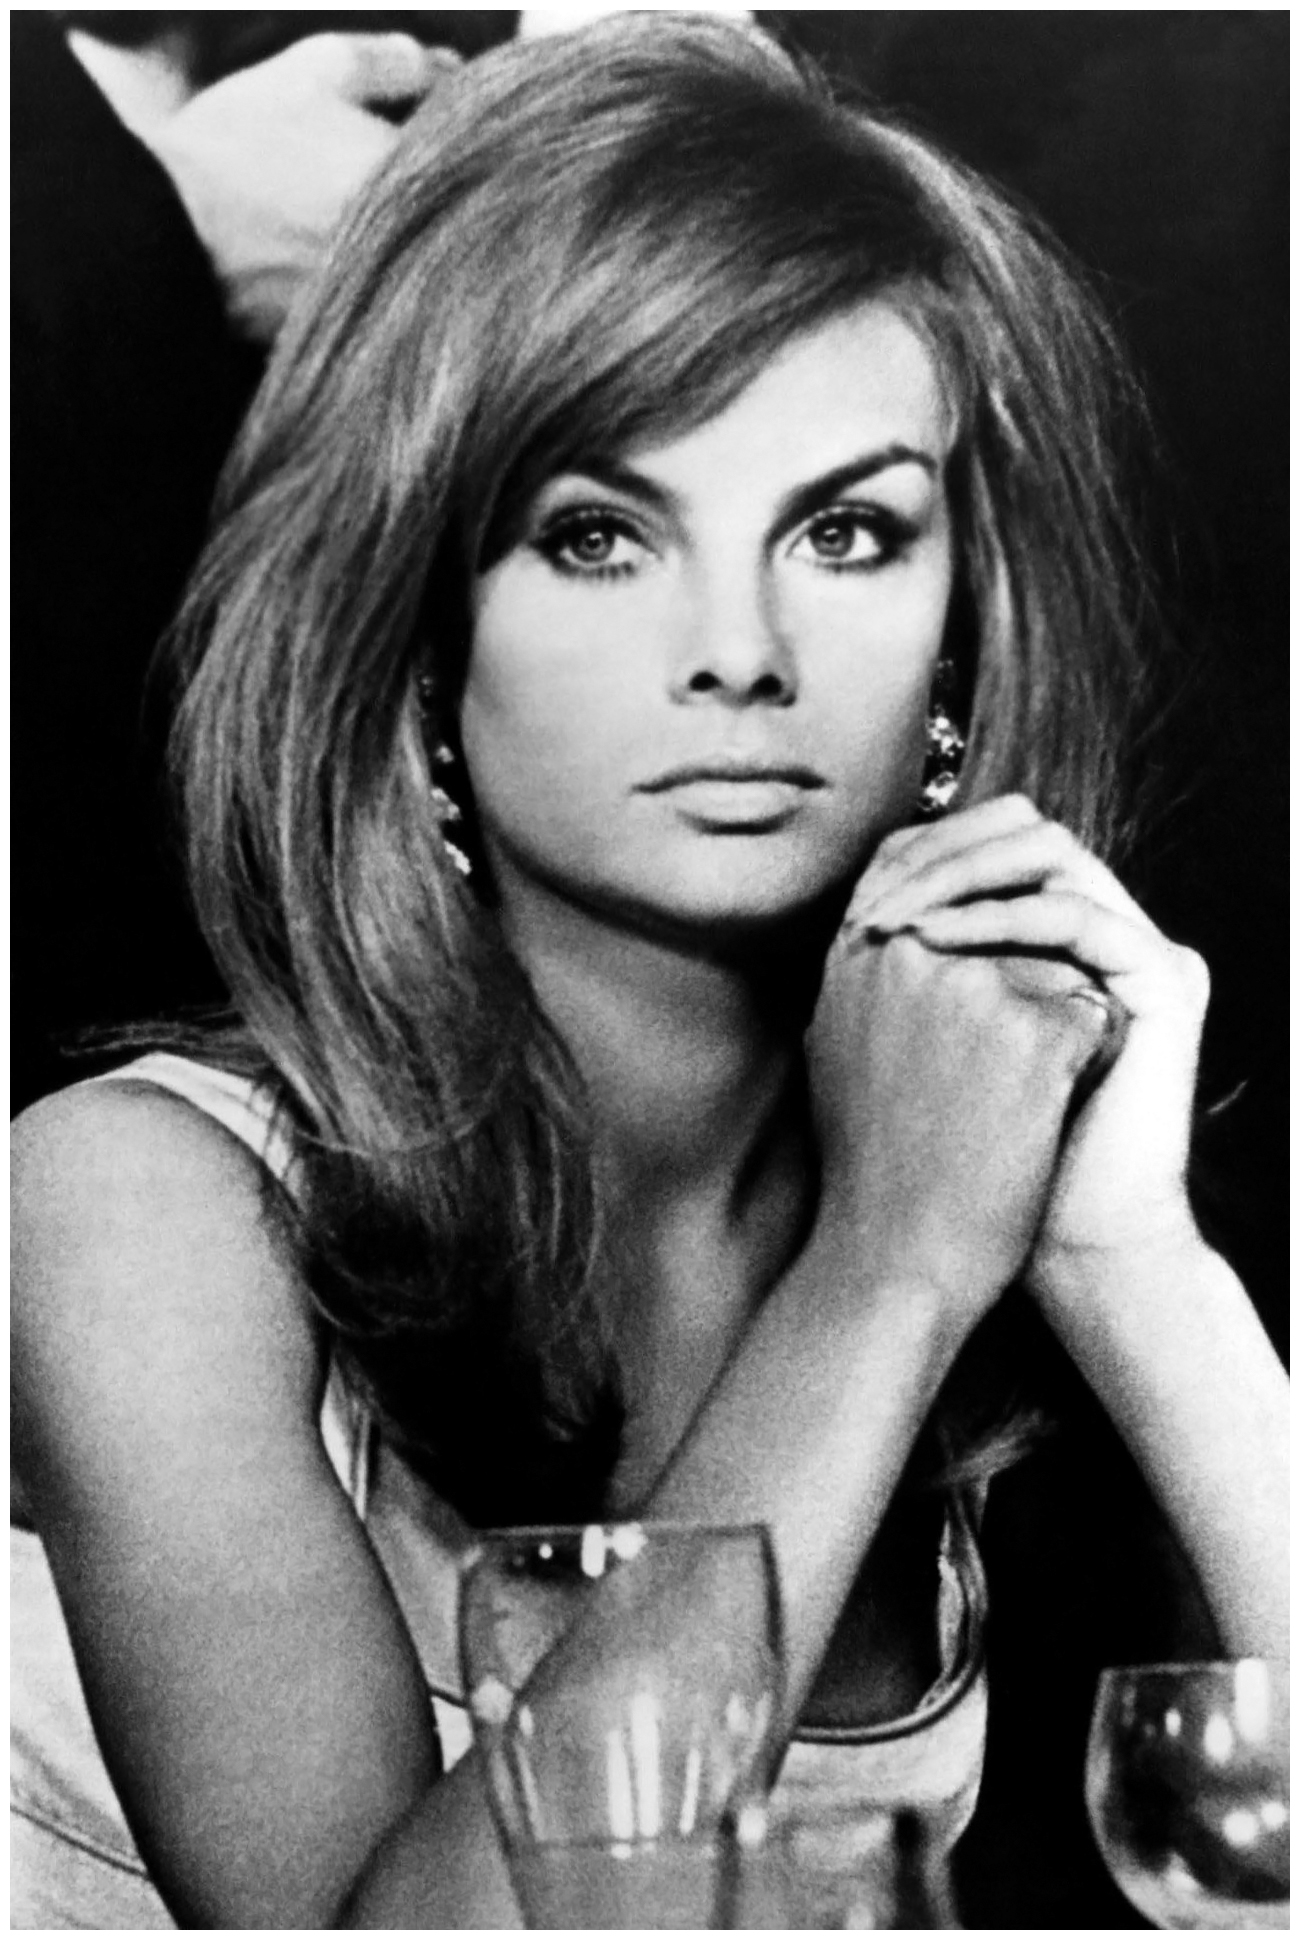 Jean Shrimpton – With her glossy, long hair and sweeping side fringe ...